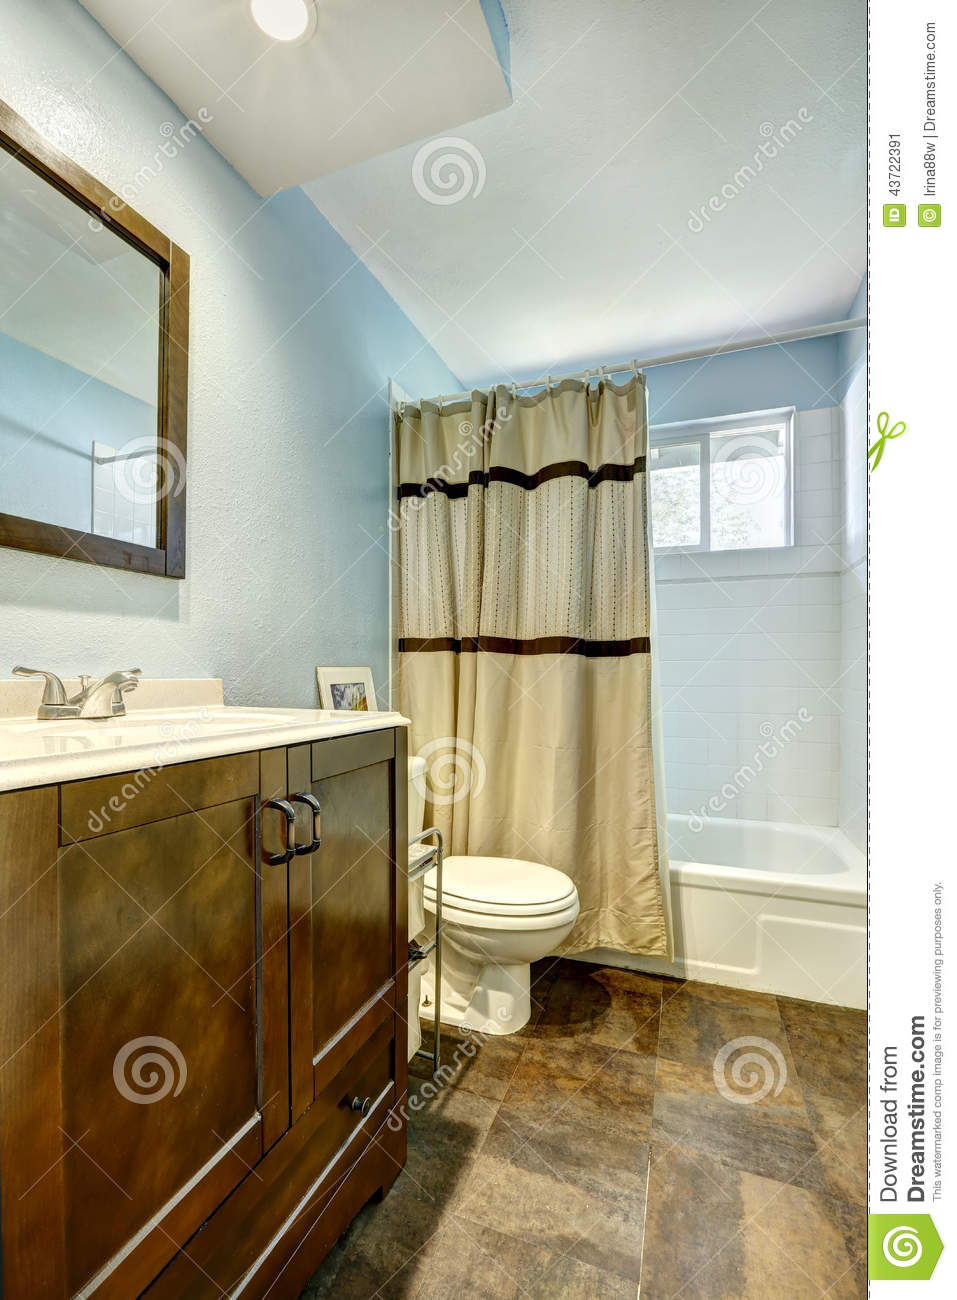 Fliesen Bad Braun: Bathroom With Brown Tile Floor And Light Blue Walls Stock